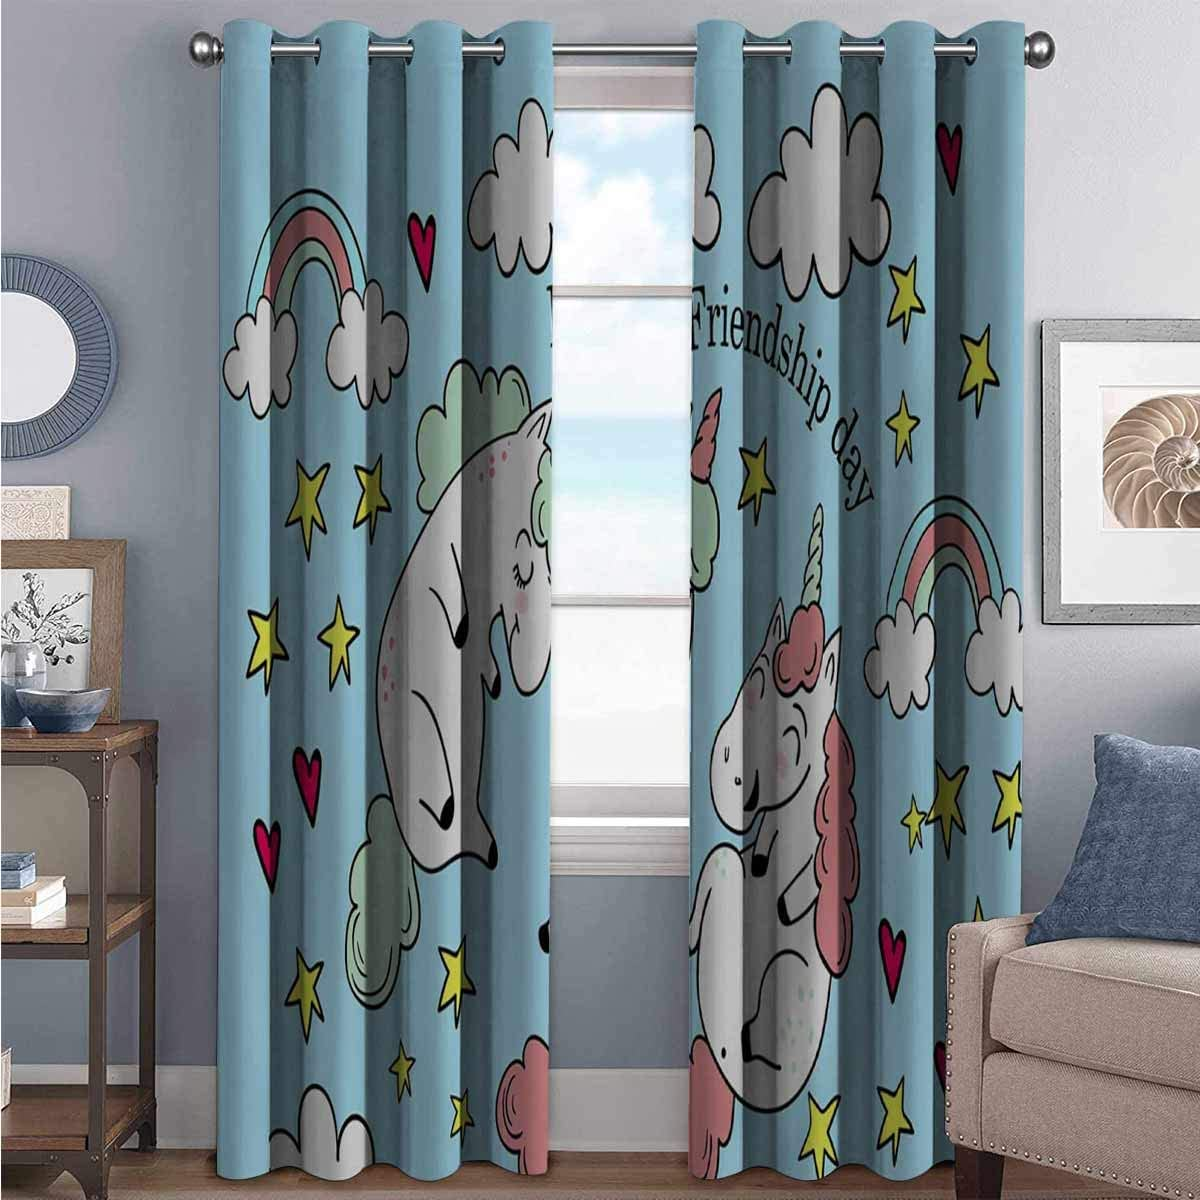 ANNERY-Cute-Unicorn-Blackout-Curtains-With-Three-Layer-Braided-Noise-Reduction